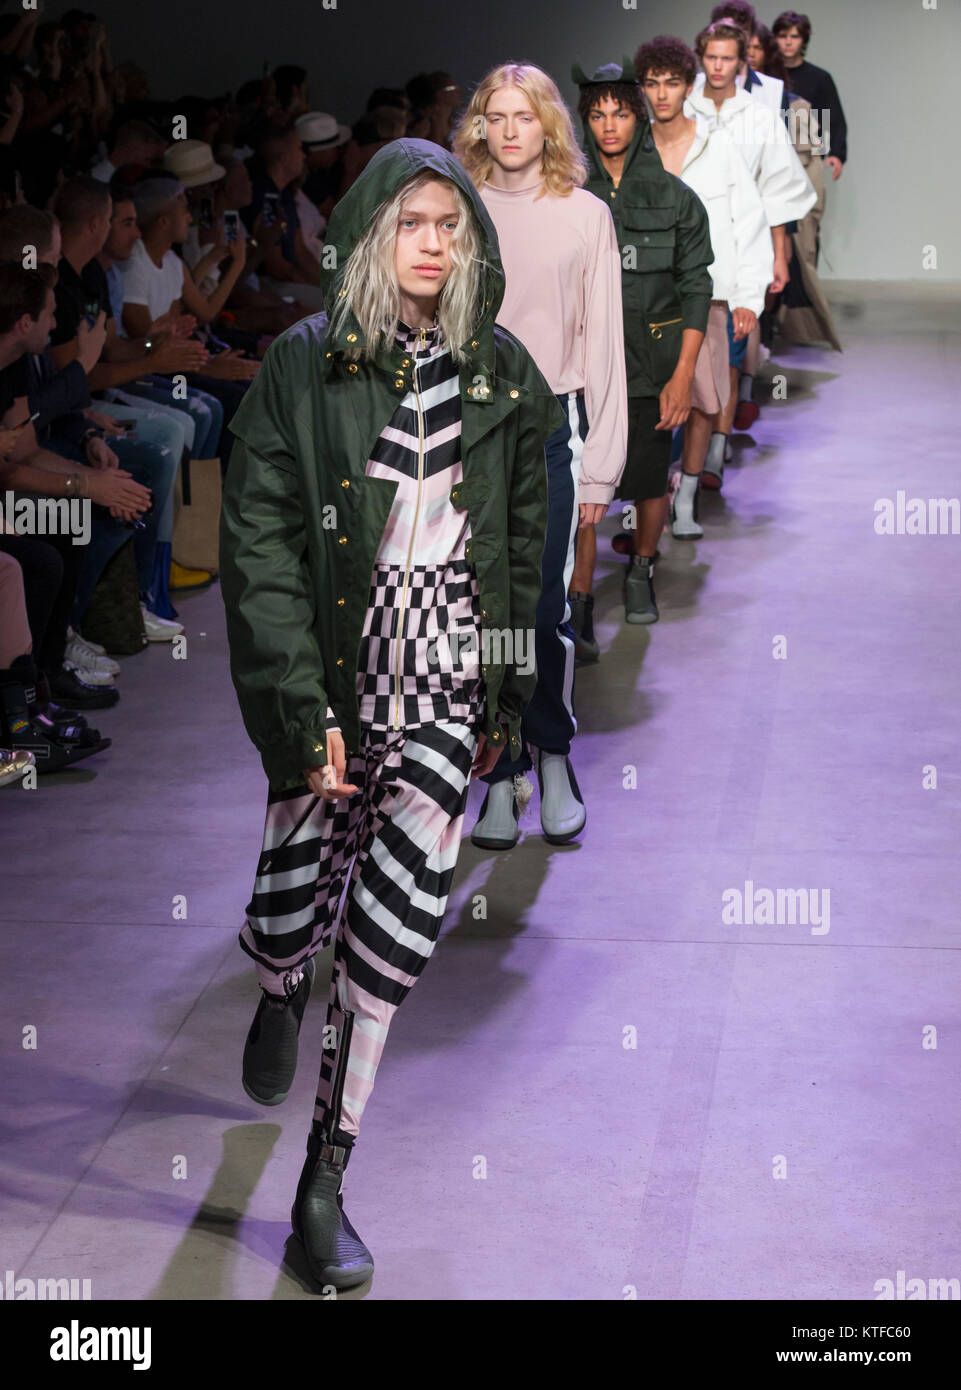 NEW YORK, NY - July 11, 2017: Models walk the runway at the N-P-Elliott Show during New York Fashion Week Men's - Stock Image